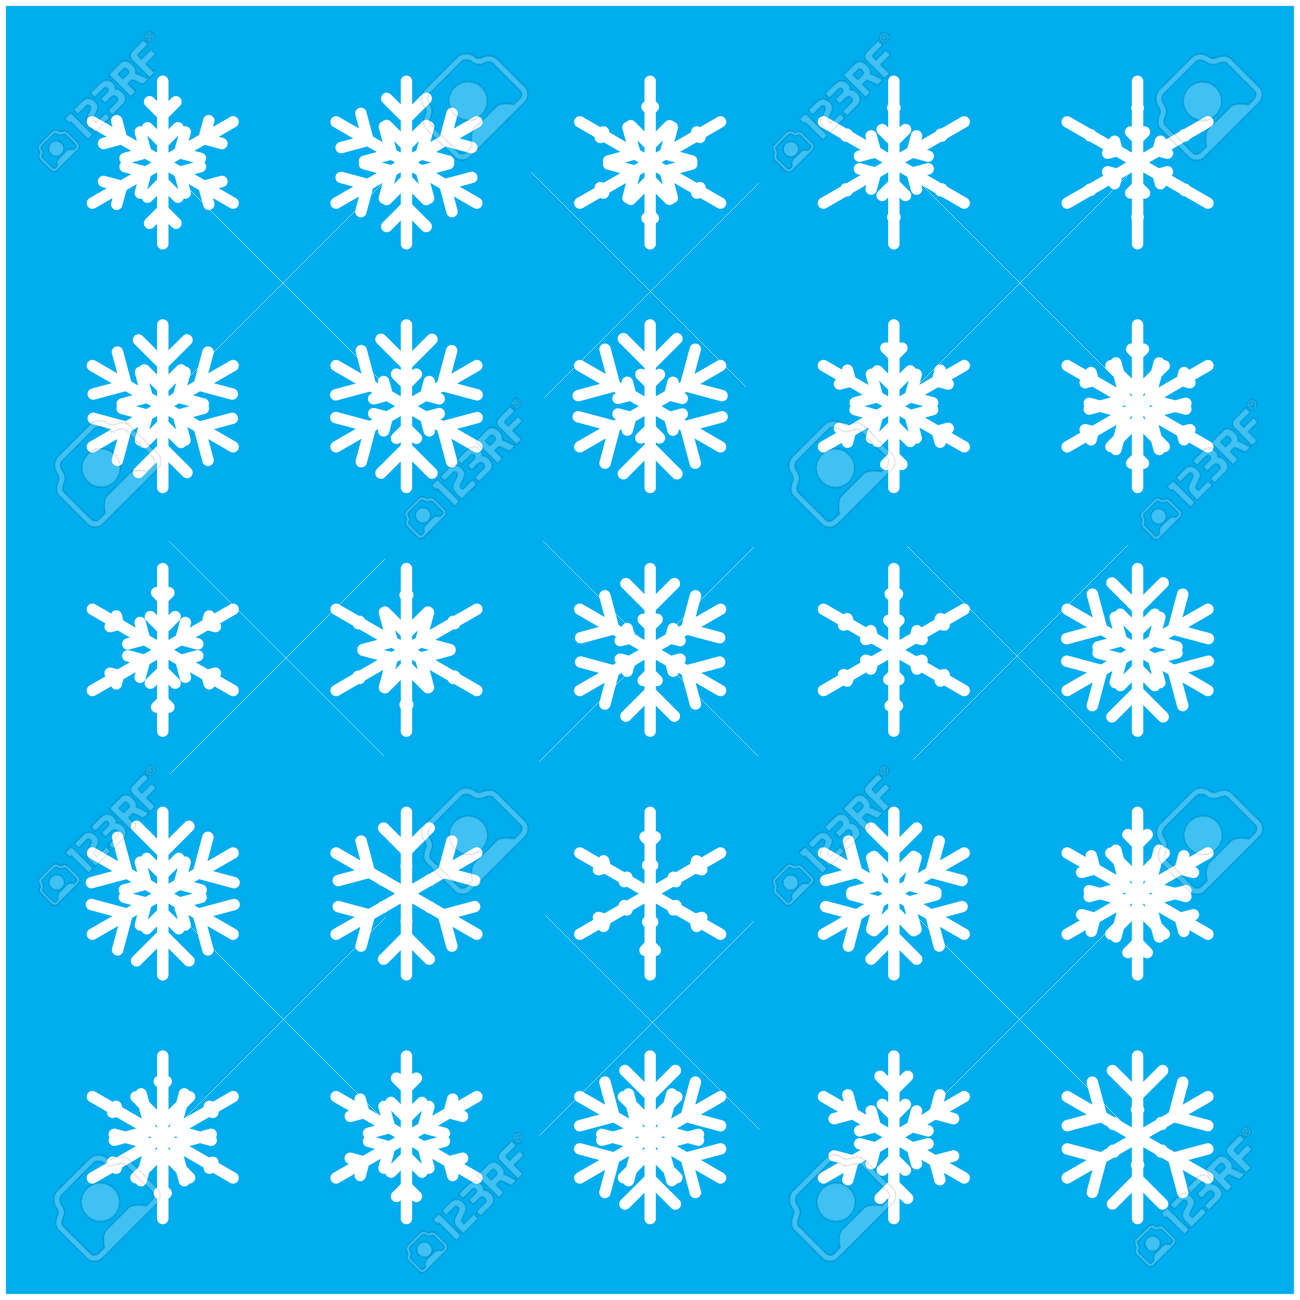 Set of different winter snowflakes Vector illustration Stock Vector - 88142963